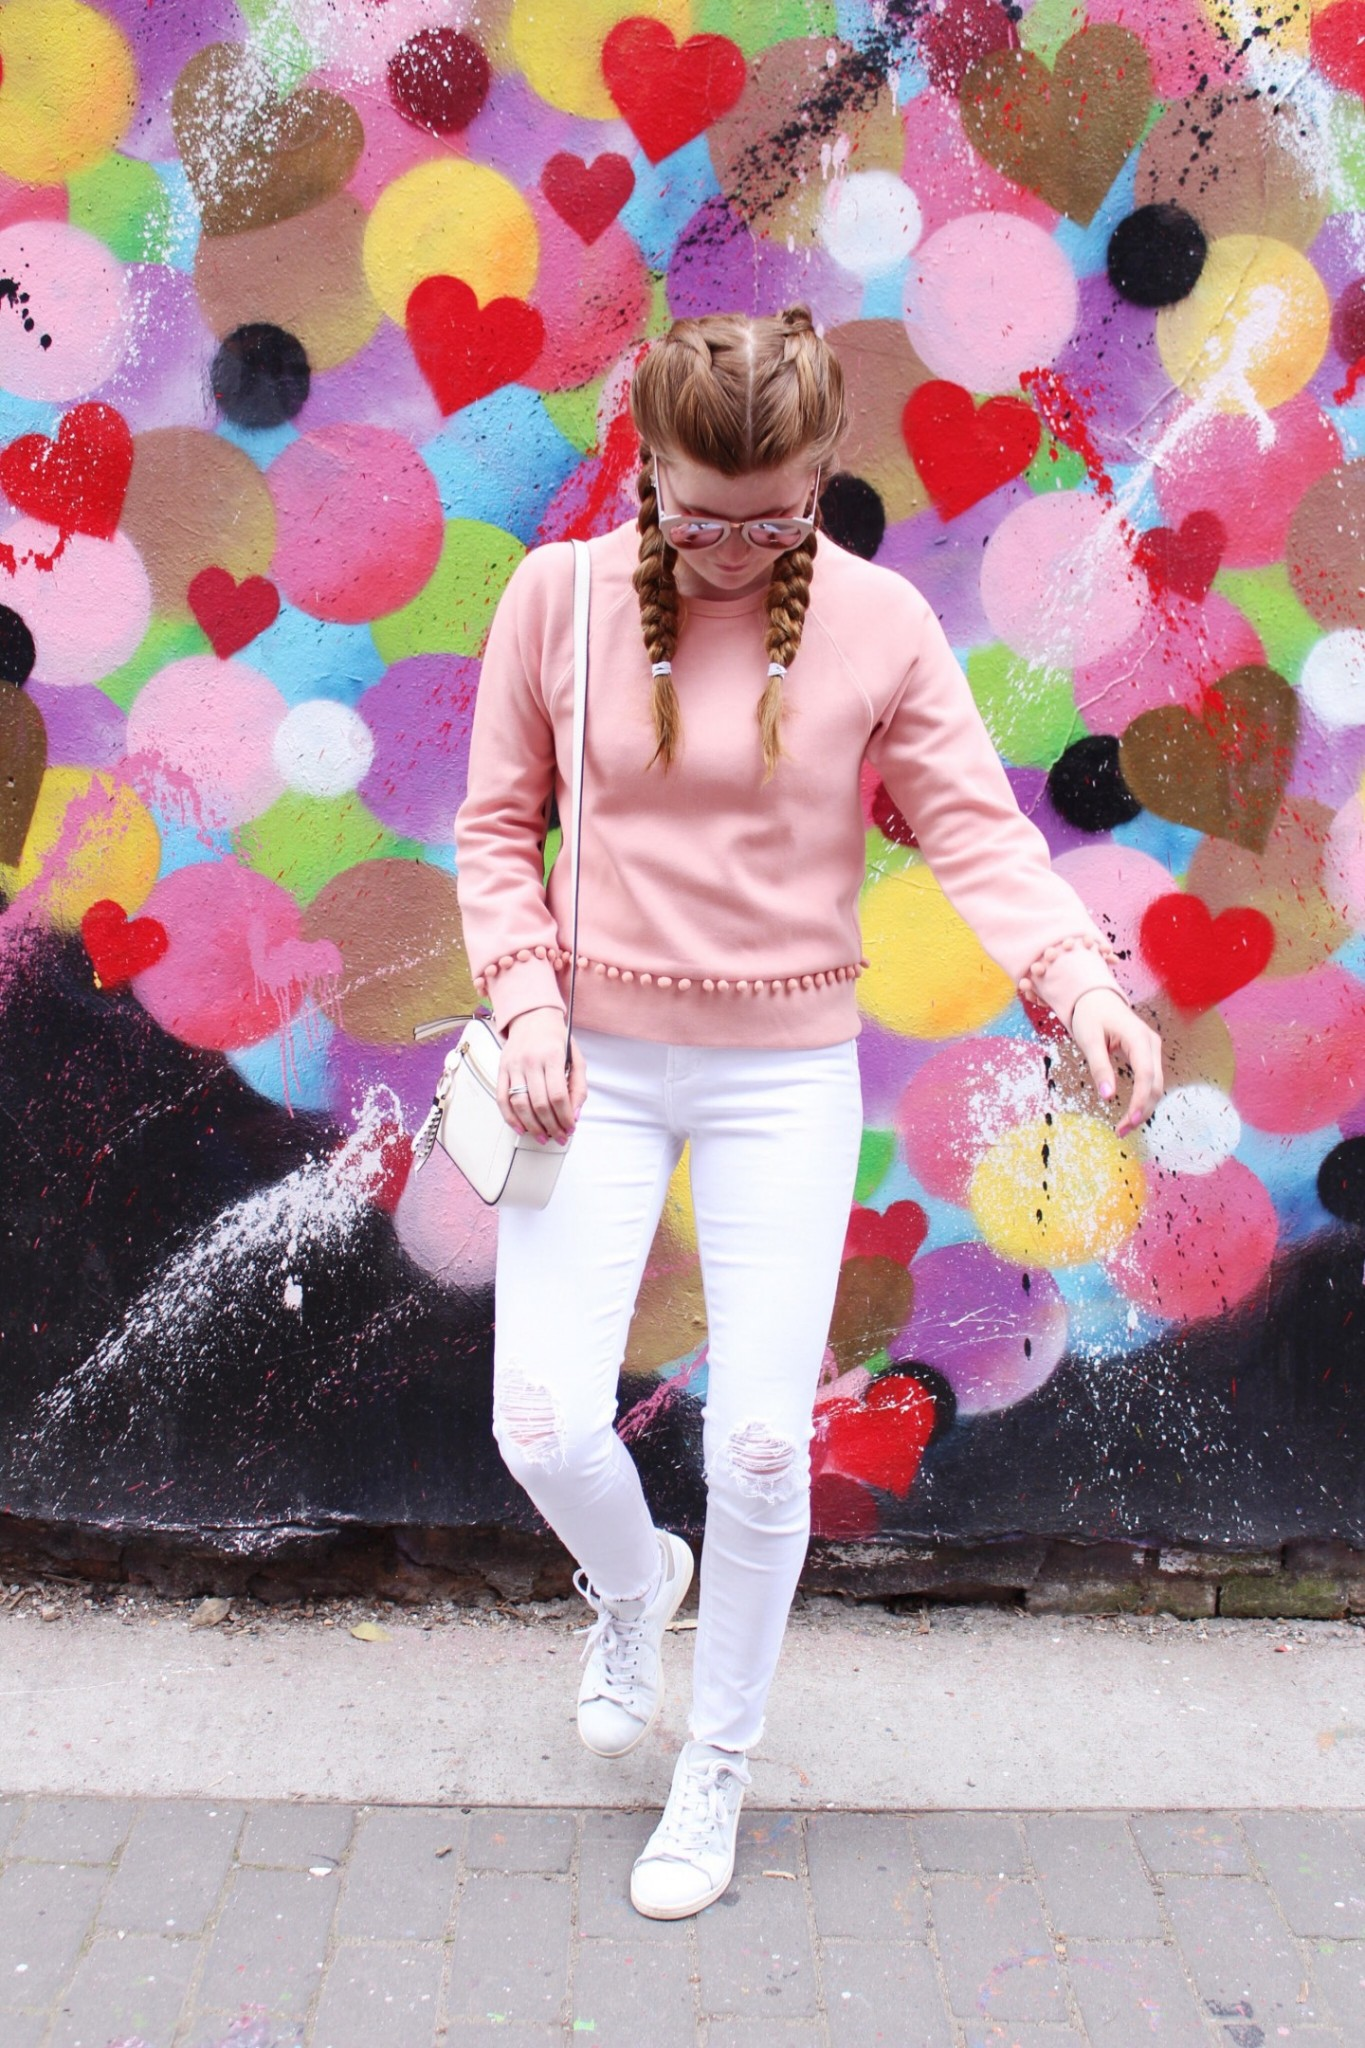 Lifestyle blogger Mollie Sheperdson shares a fun spring look in front of the Heart Wall in NYC